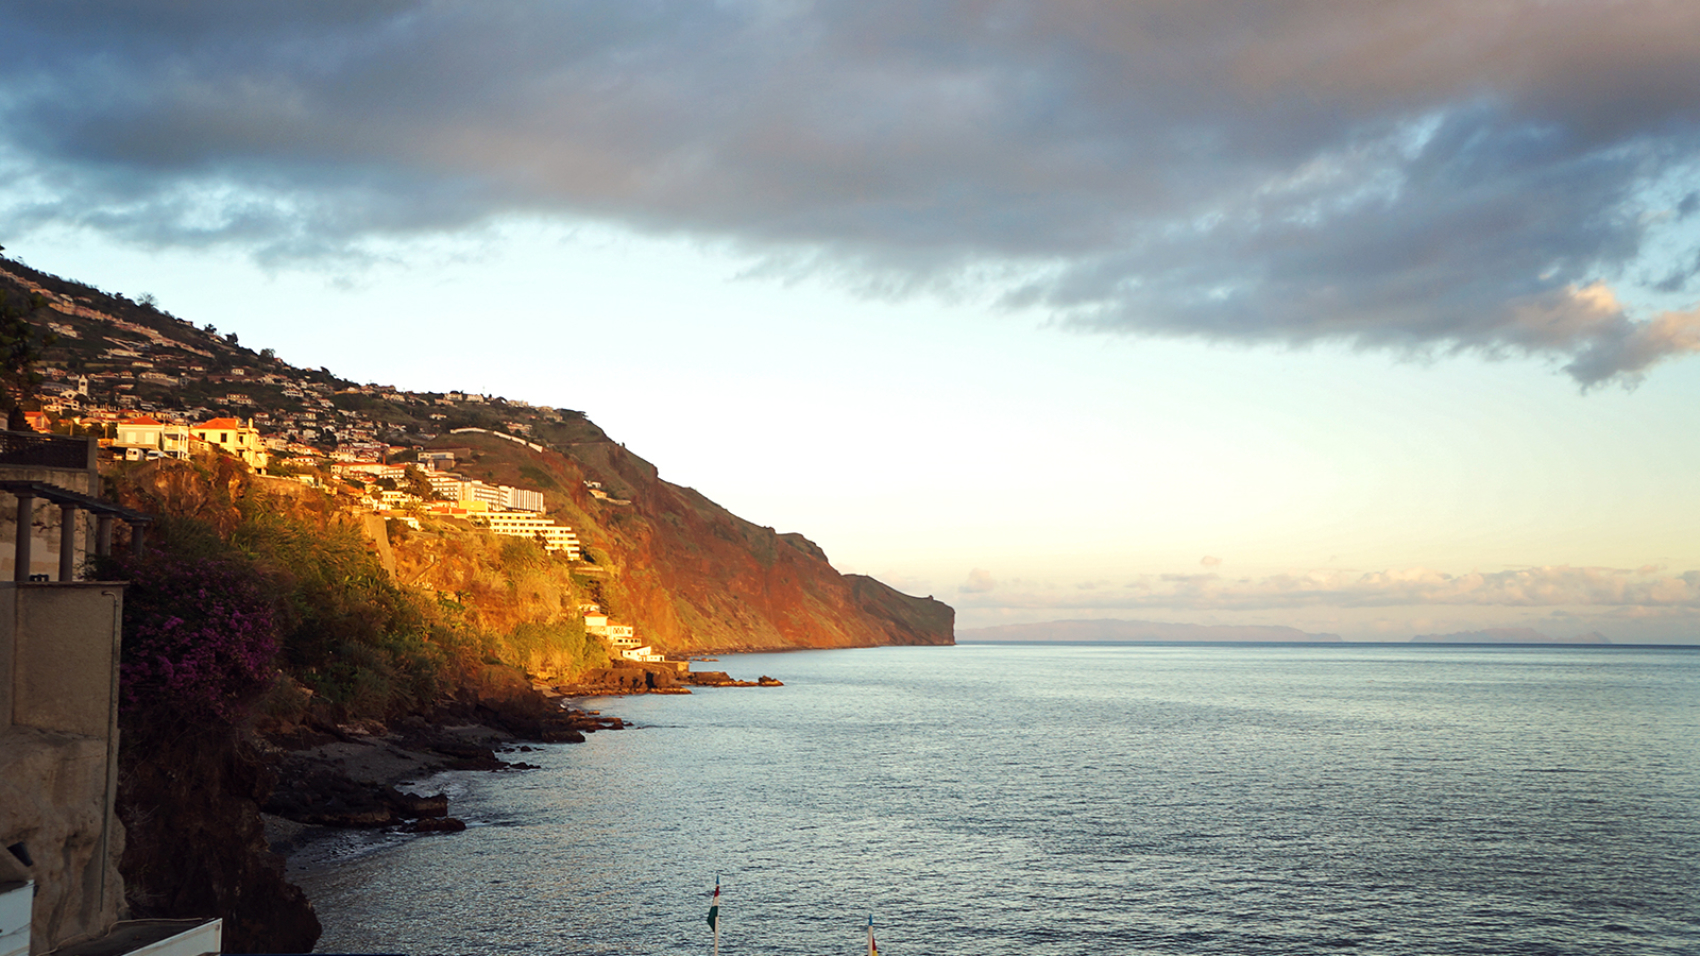 sunset in Madeira